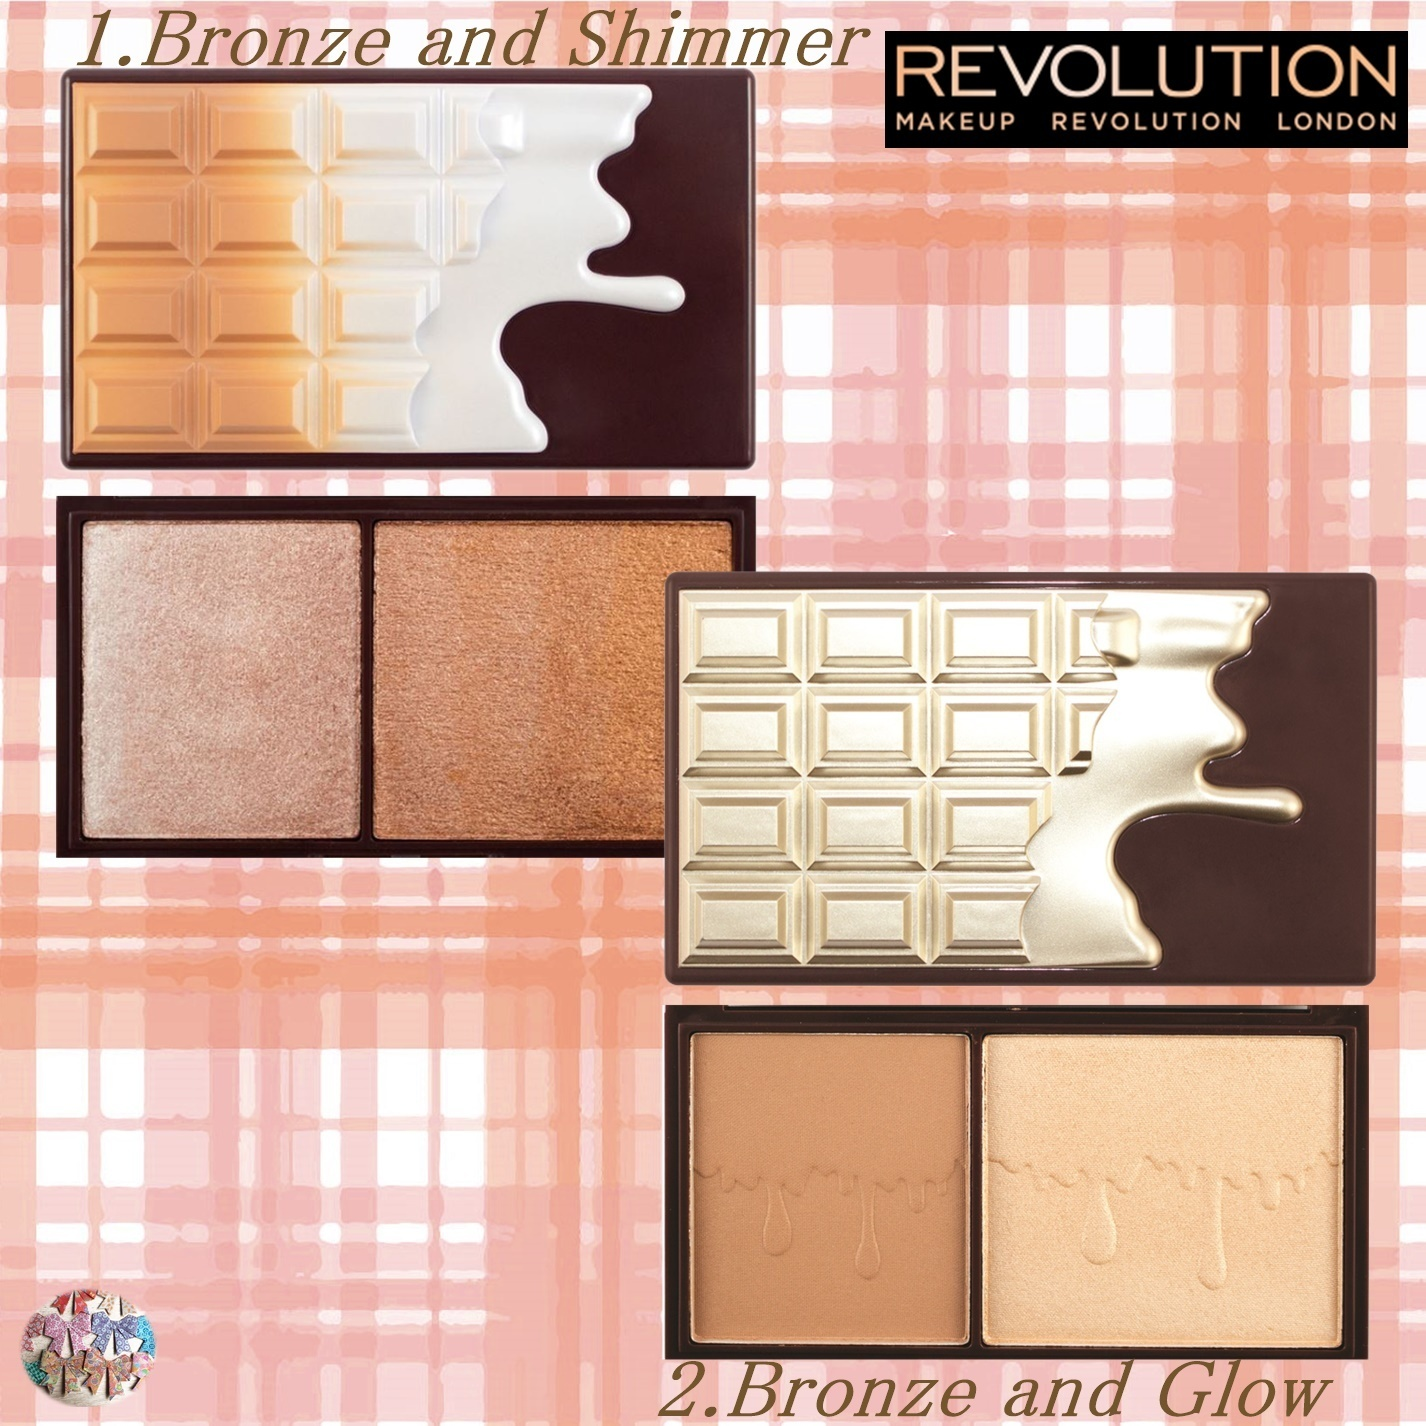 MAKEUP REVOLUTION☆Mini Chocolate Bar ブロンザー ハイライト